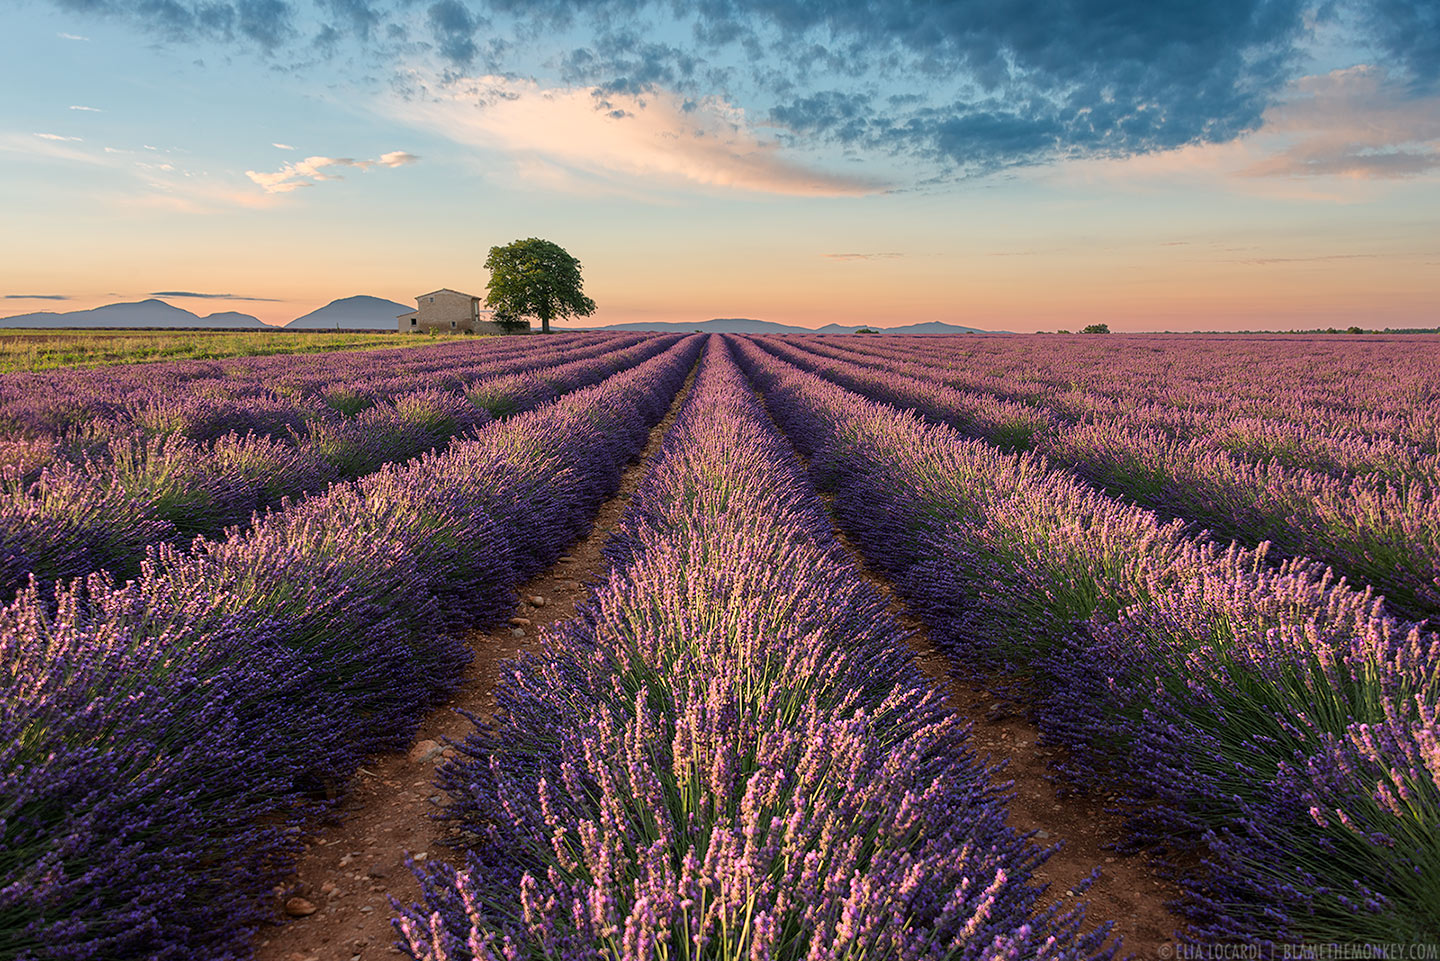 At sunrise, the colors of the lavender fields in Valensole France are absolutely spectacular.